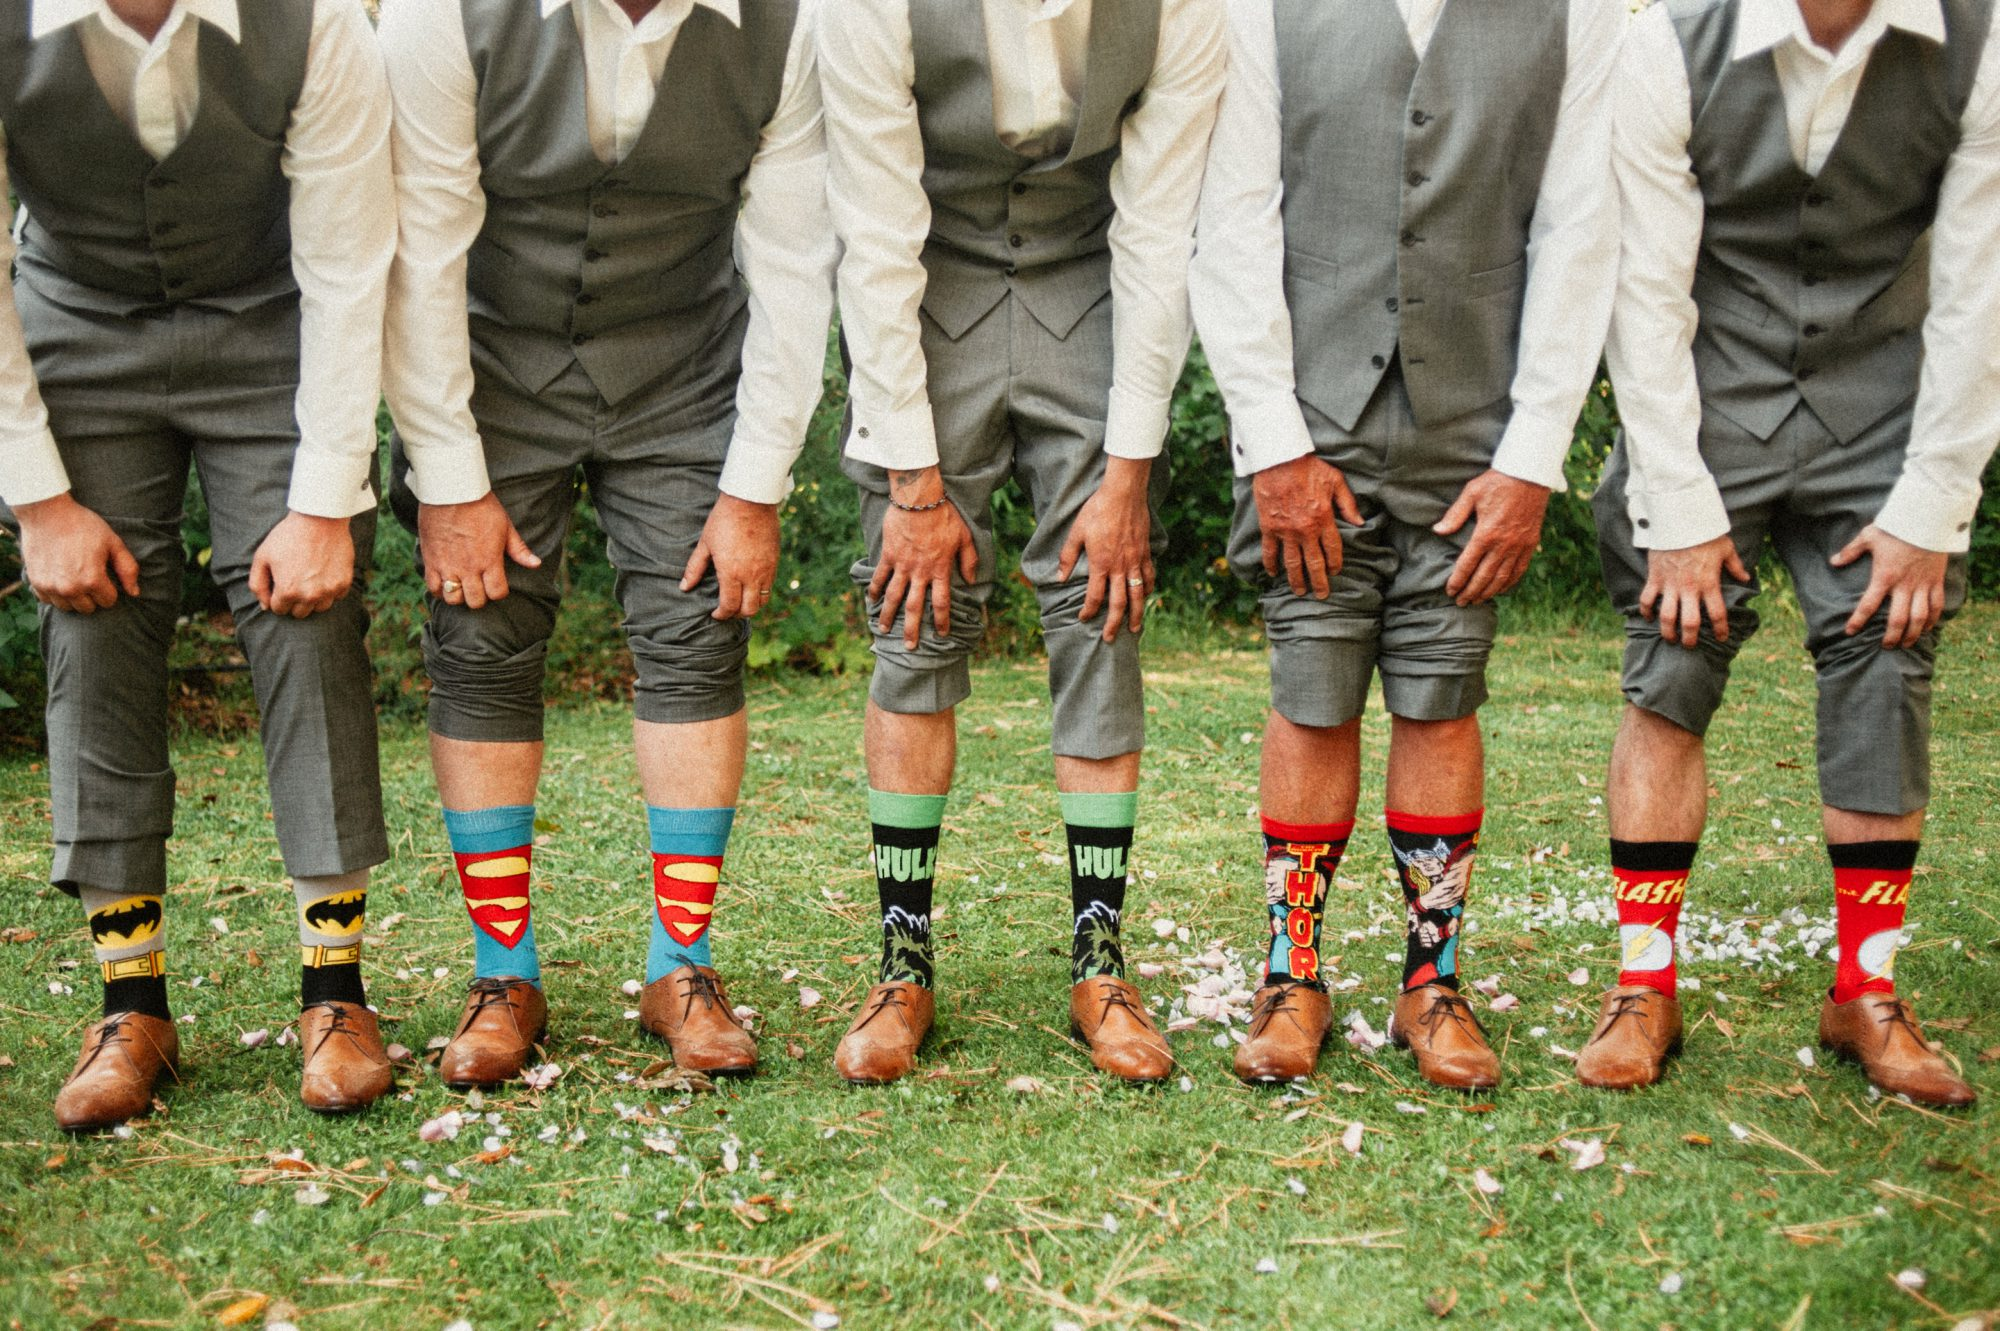 Groomsmen showing their socks in Tuscany